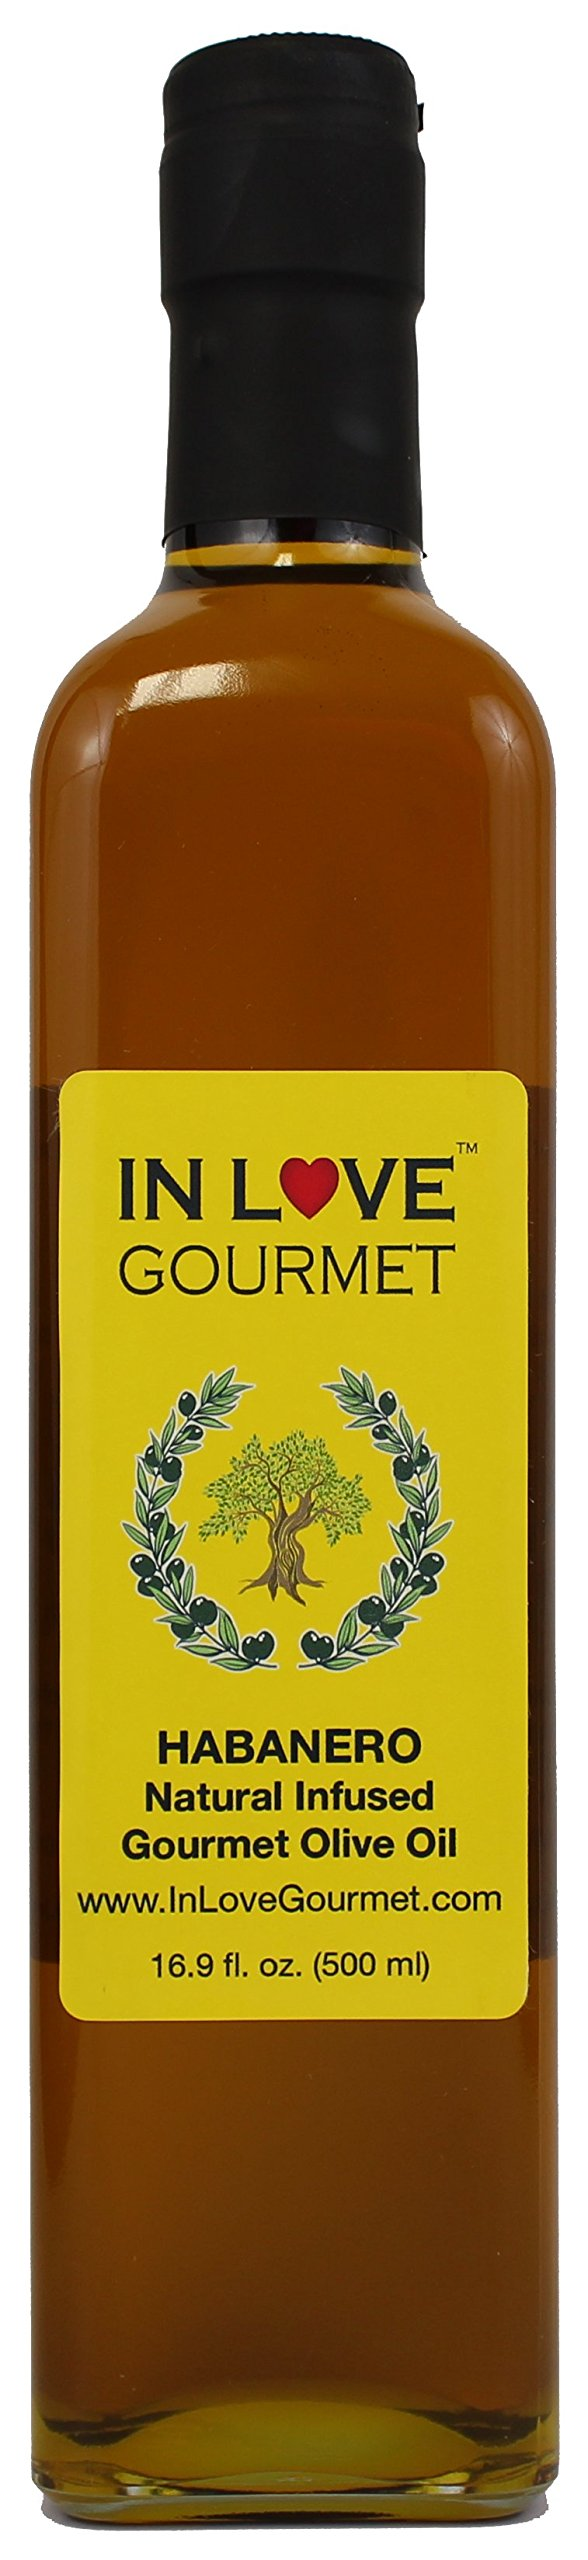 In Love Gourmet Habanero Natural Flavor Infused Olive Oil 500ML/16.9oz Spicy Habanero Oil, Spice up your Fish, Chicken, Veggies, Pastas.